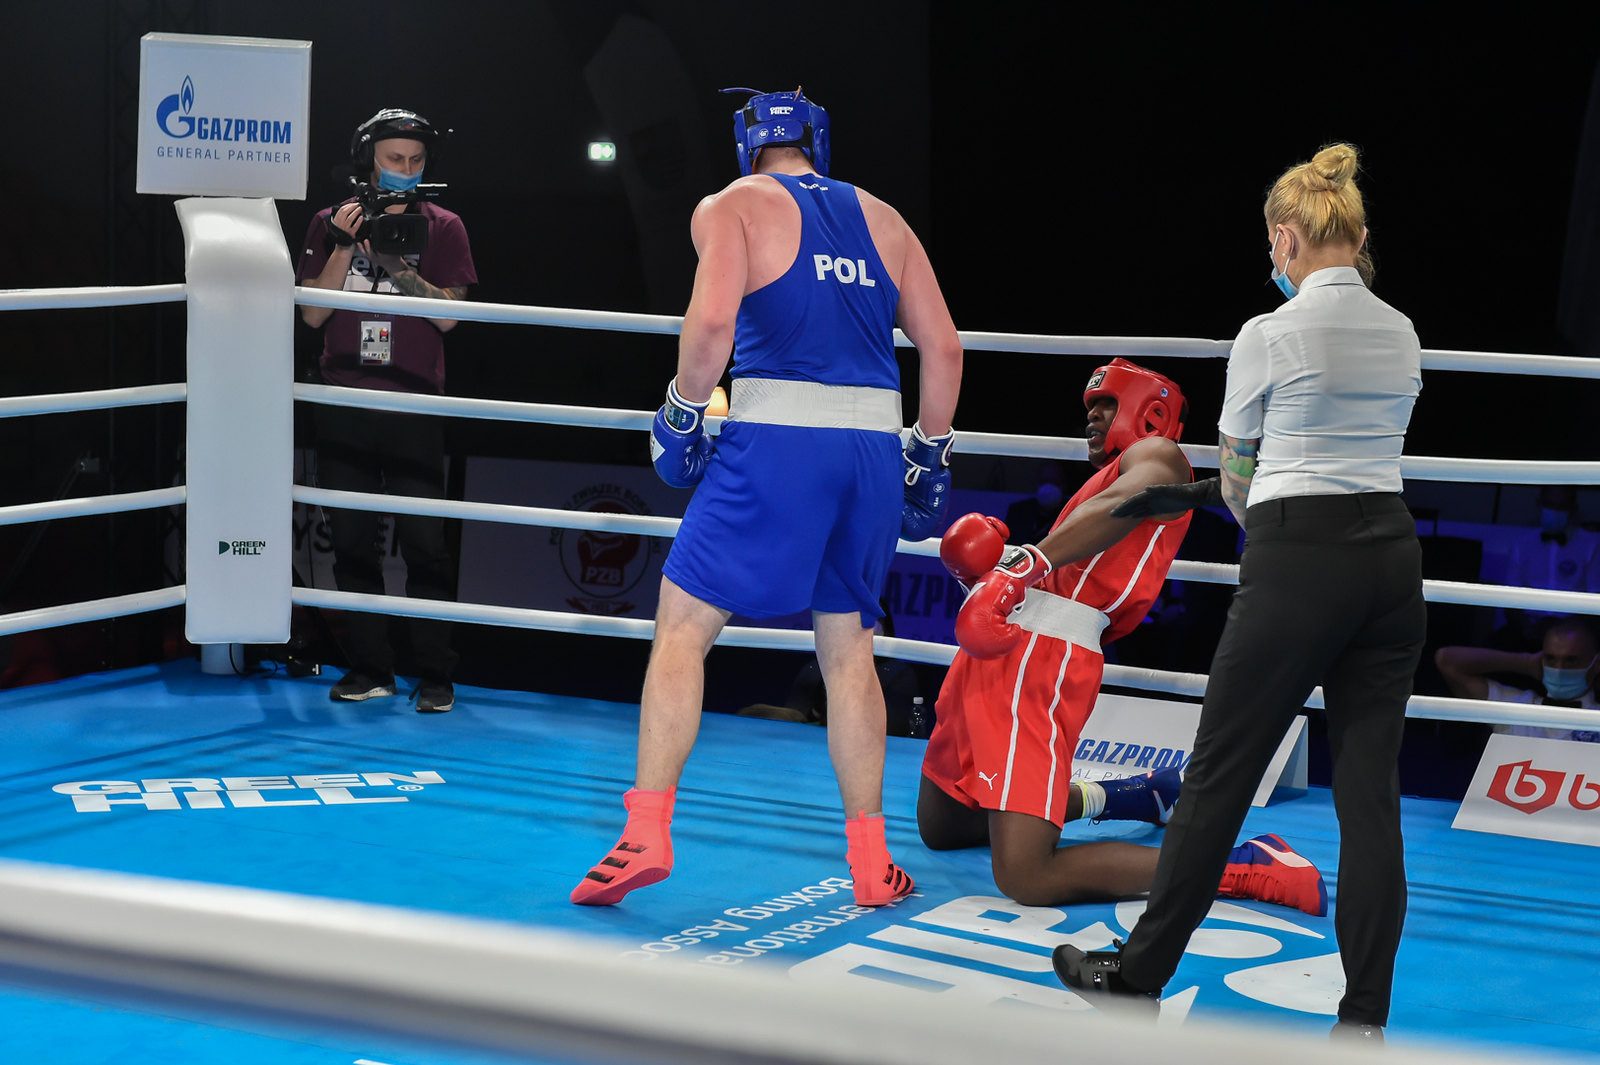 More than 400 boxers from 52 countries are due to compete at the Championships, which are being staged behind closed doors ©AIBA